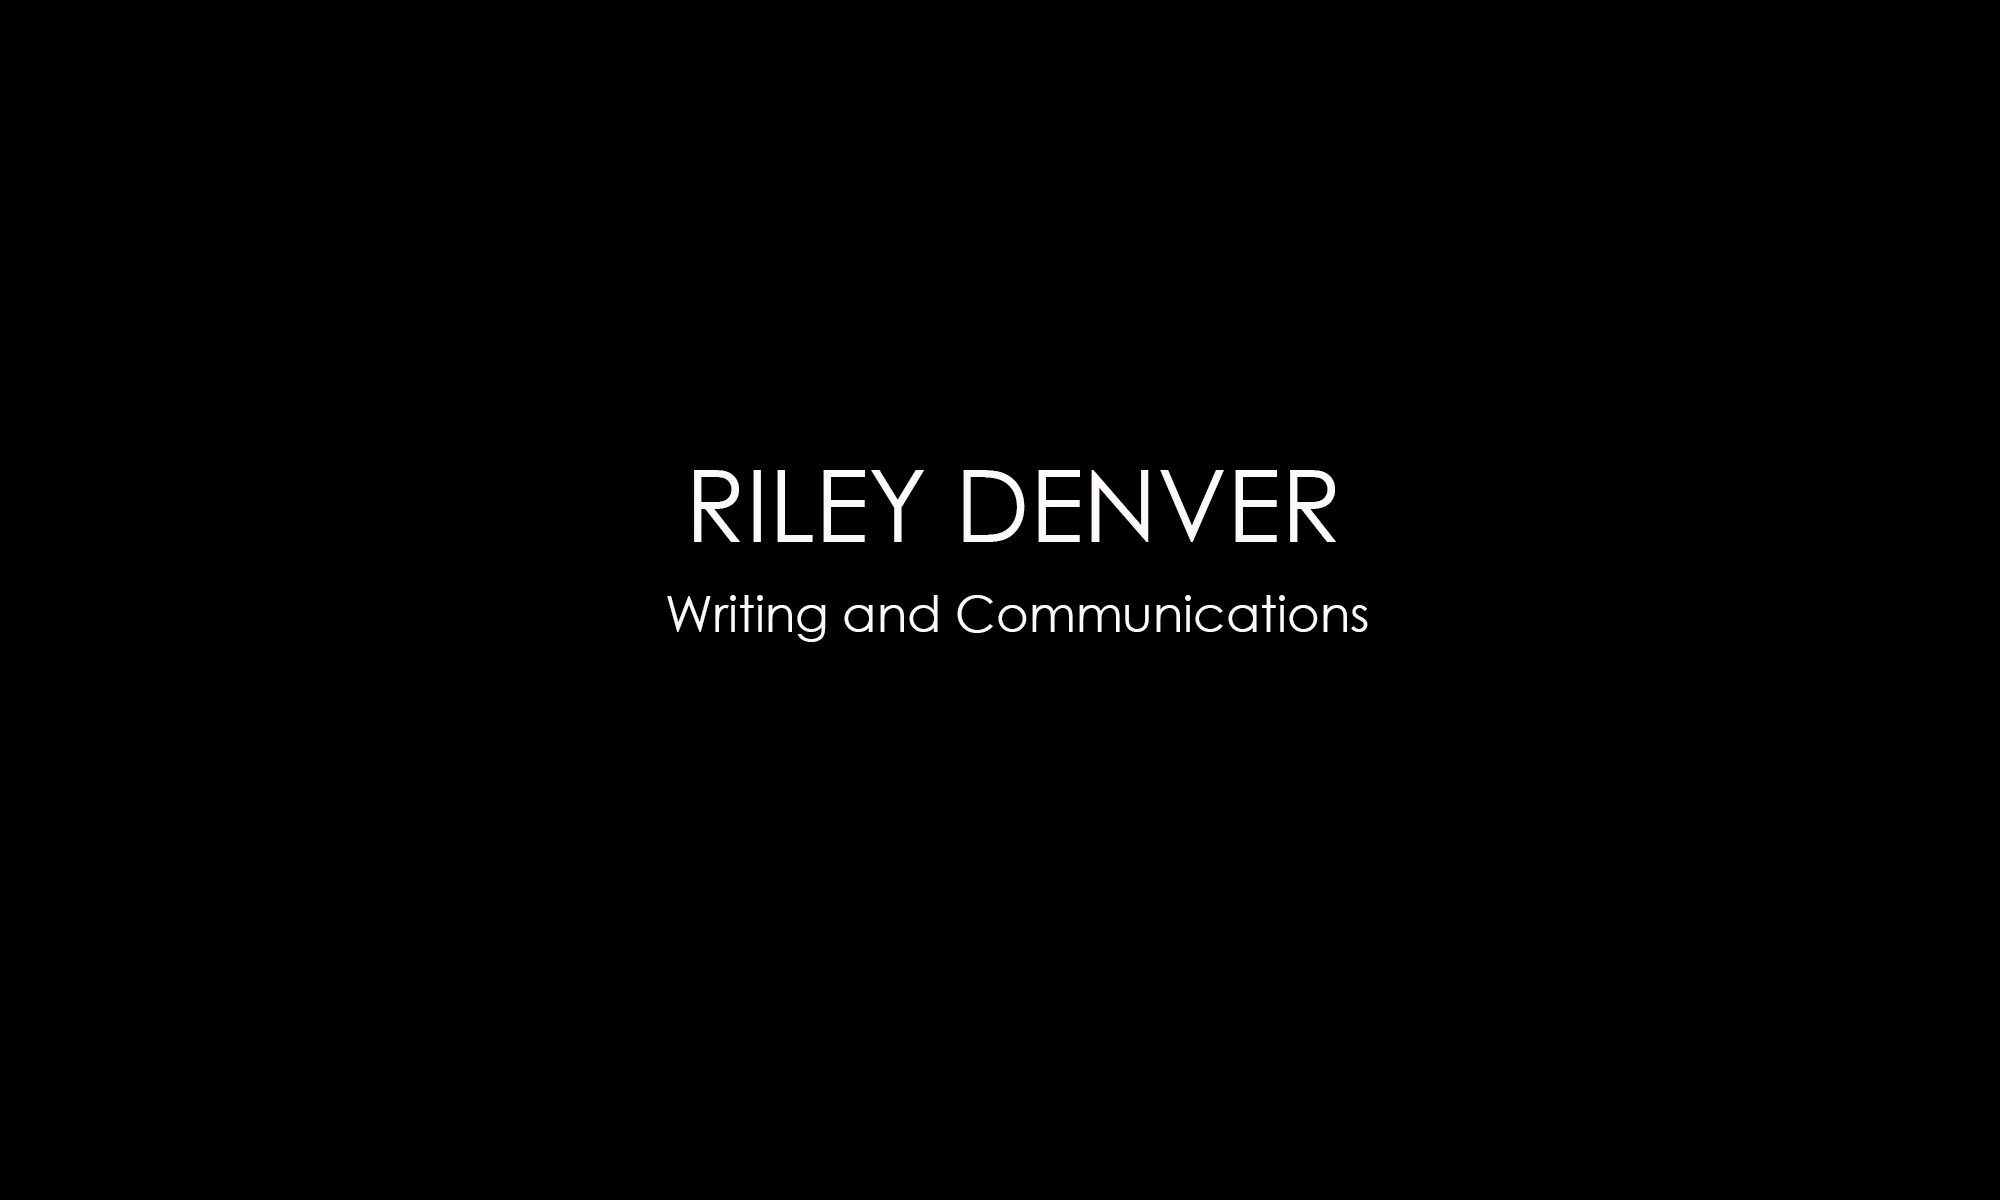 Riley Denver